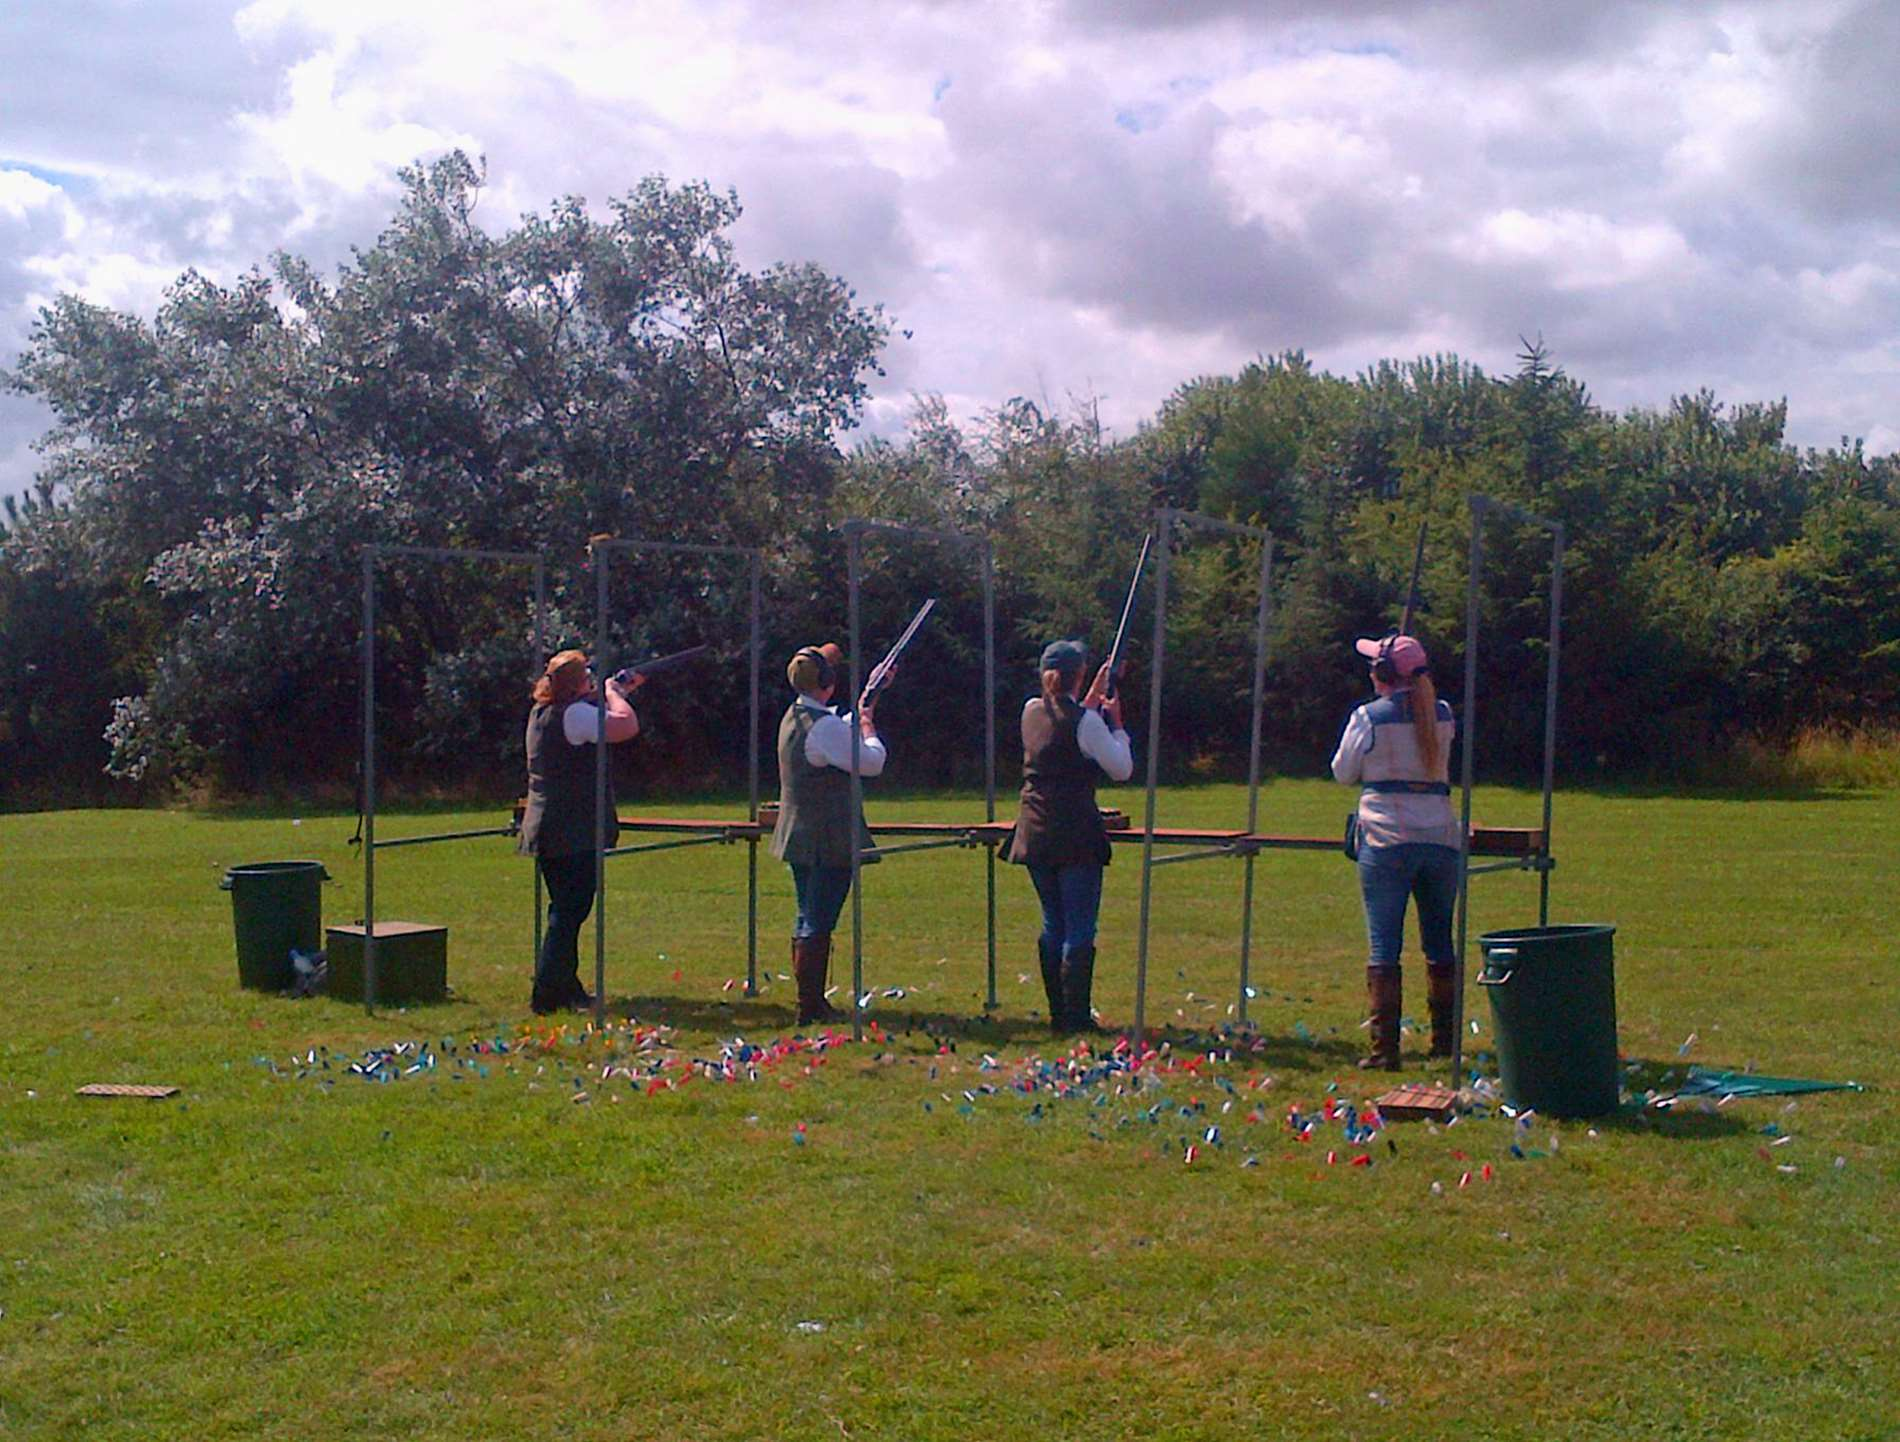 Girls shooting clay targets